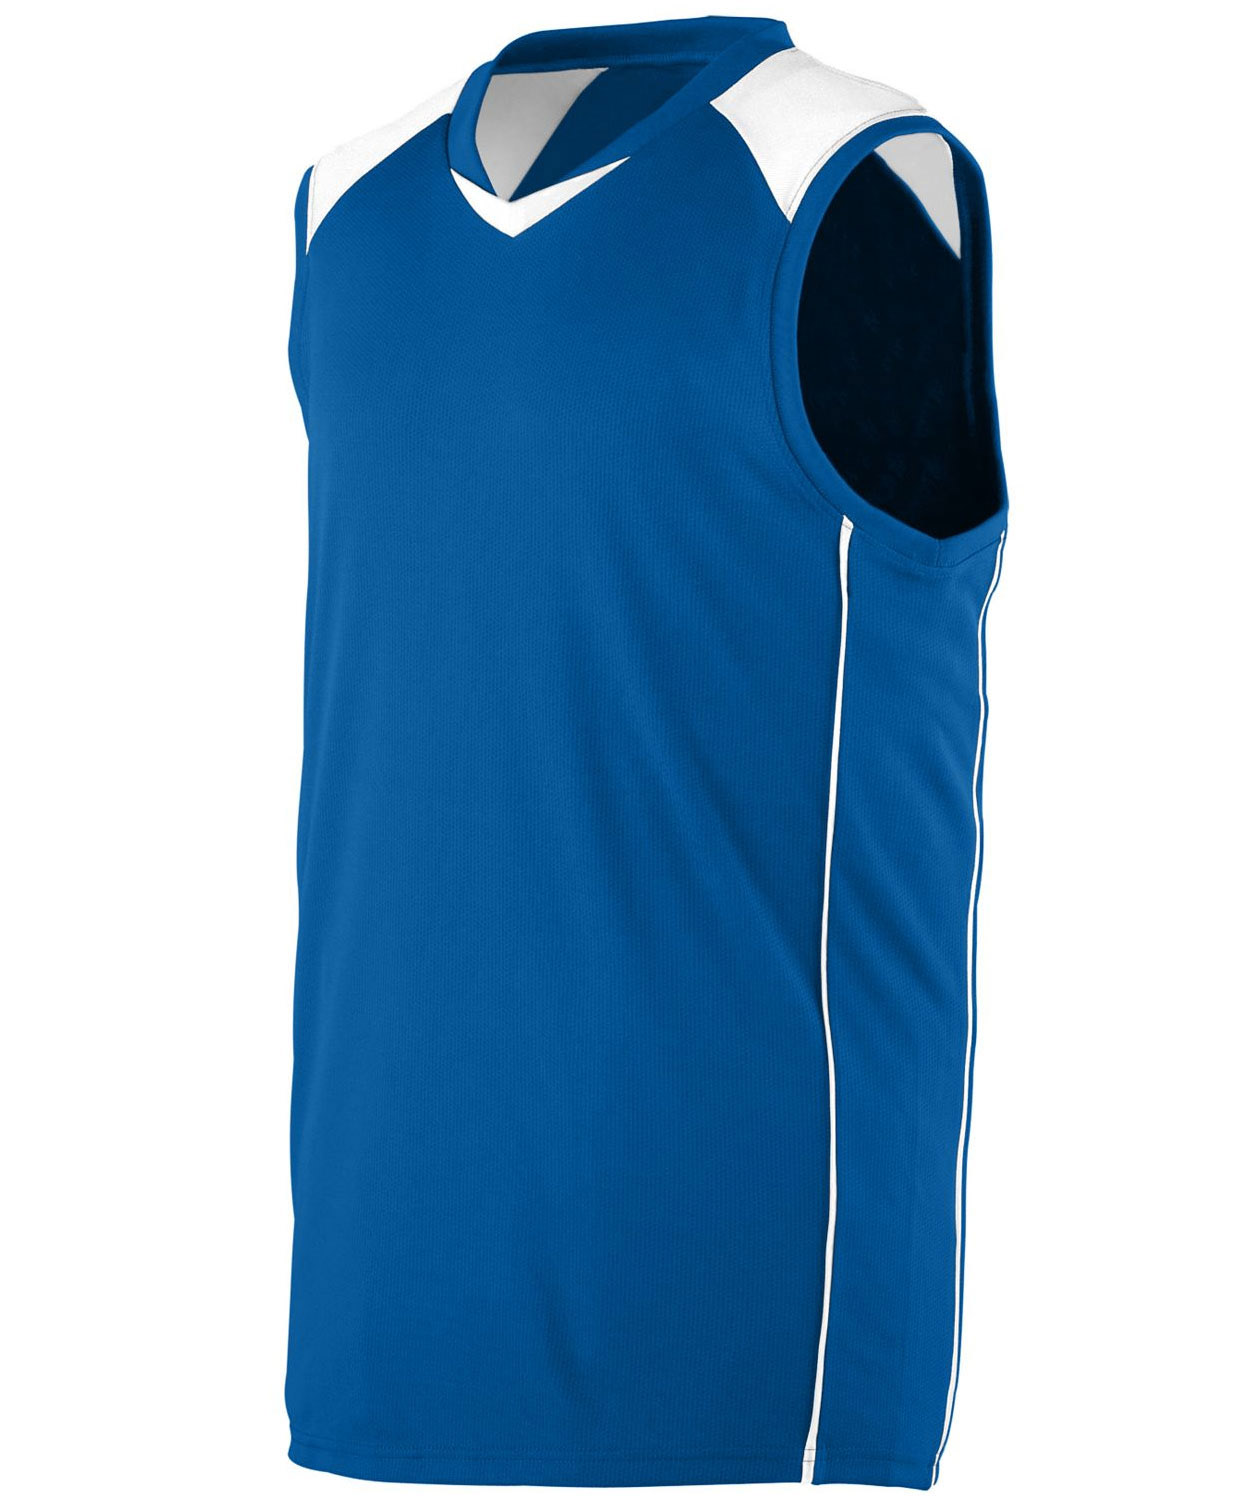 Basketball Jersey Clipart - ClipArt Best